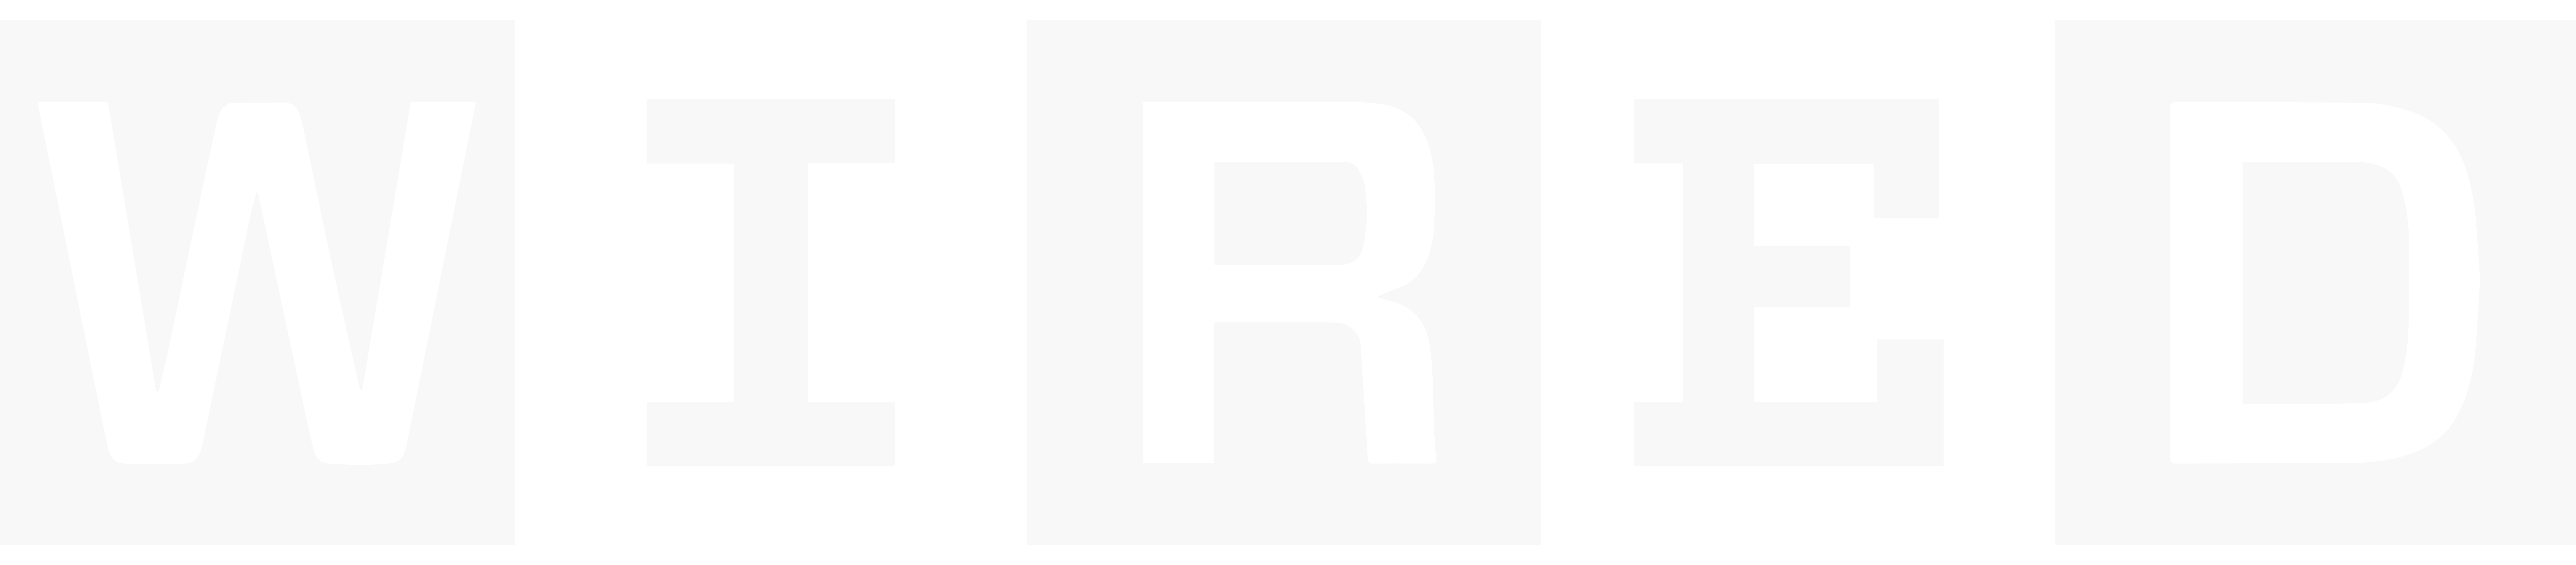 A Wired logo, all text.